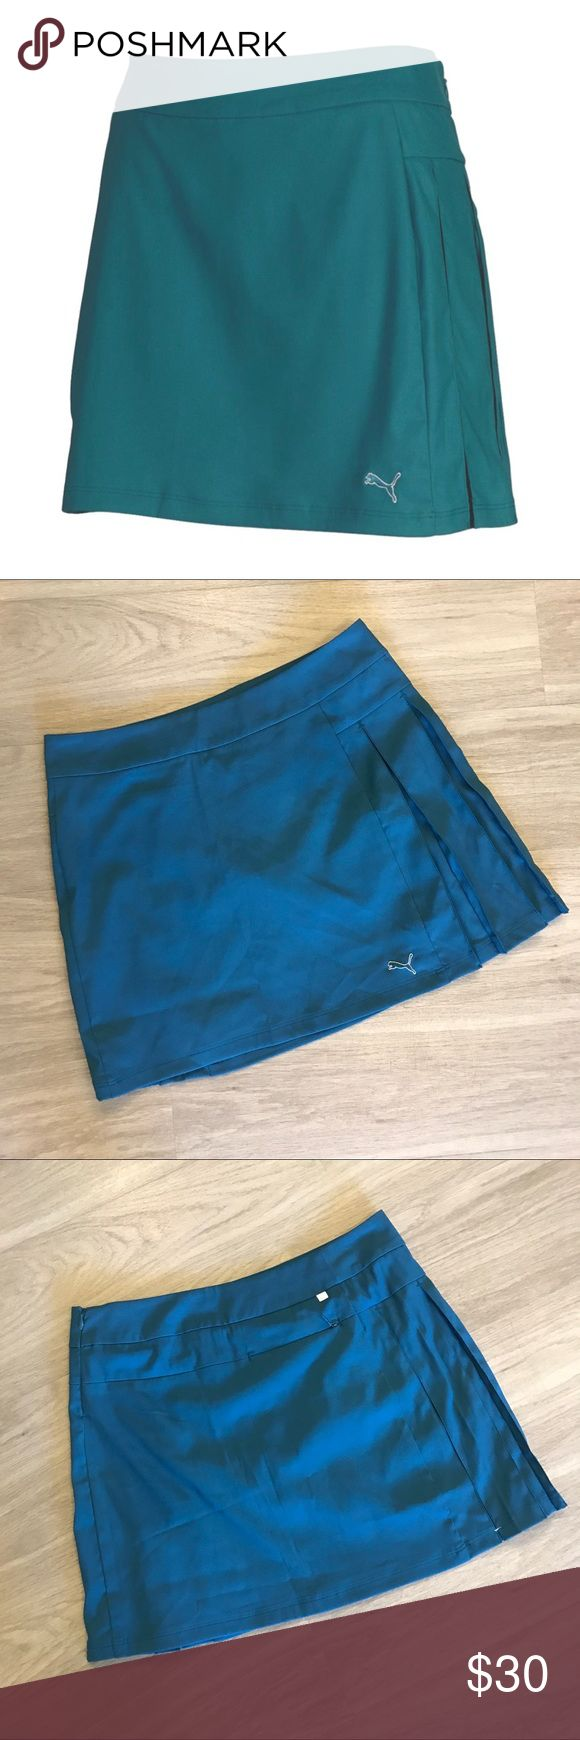 """NWOT Puma Teal Pleated Golf/Tennis Skort NWOT. Never worn. Puma Teal Pleated Golf/Tennis Skort. Size 8. Side Hidden Zipper Closure. Back zipper pocket. Fully Lined. Material: 93% Polyester, 7% Elastane. 32"""" Waist. 17"""" Length.   🚫Trades/Holds🚫 🚫Modeling🚫 🚫Will NOT accept lowball offers!🚫 📦Ships same day if PO is open📦 Puma Shorts Skorts"""